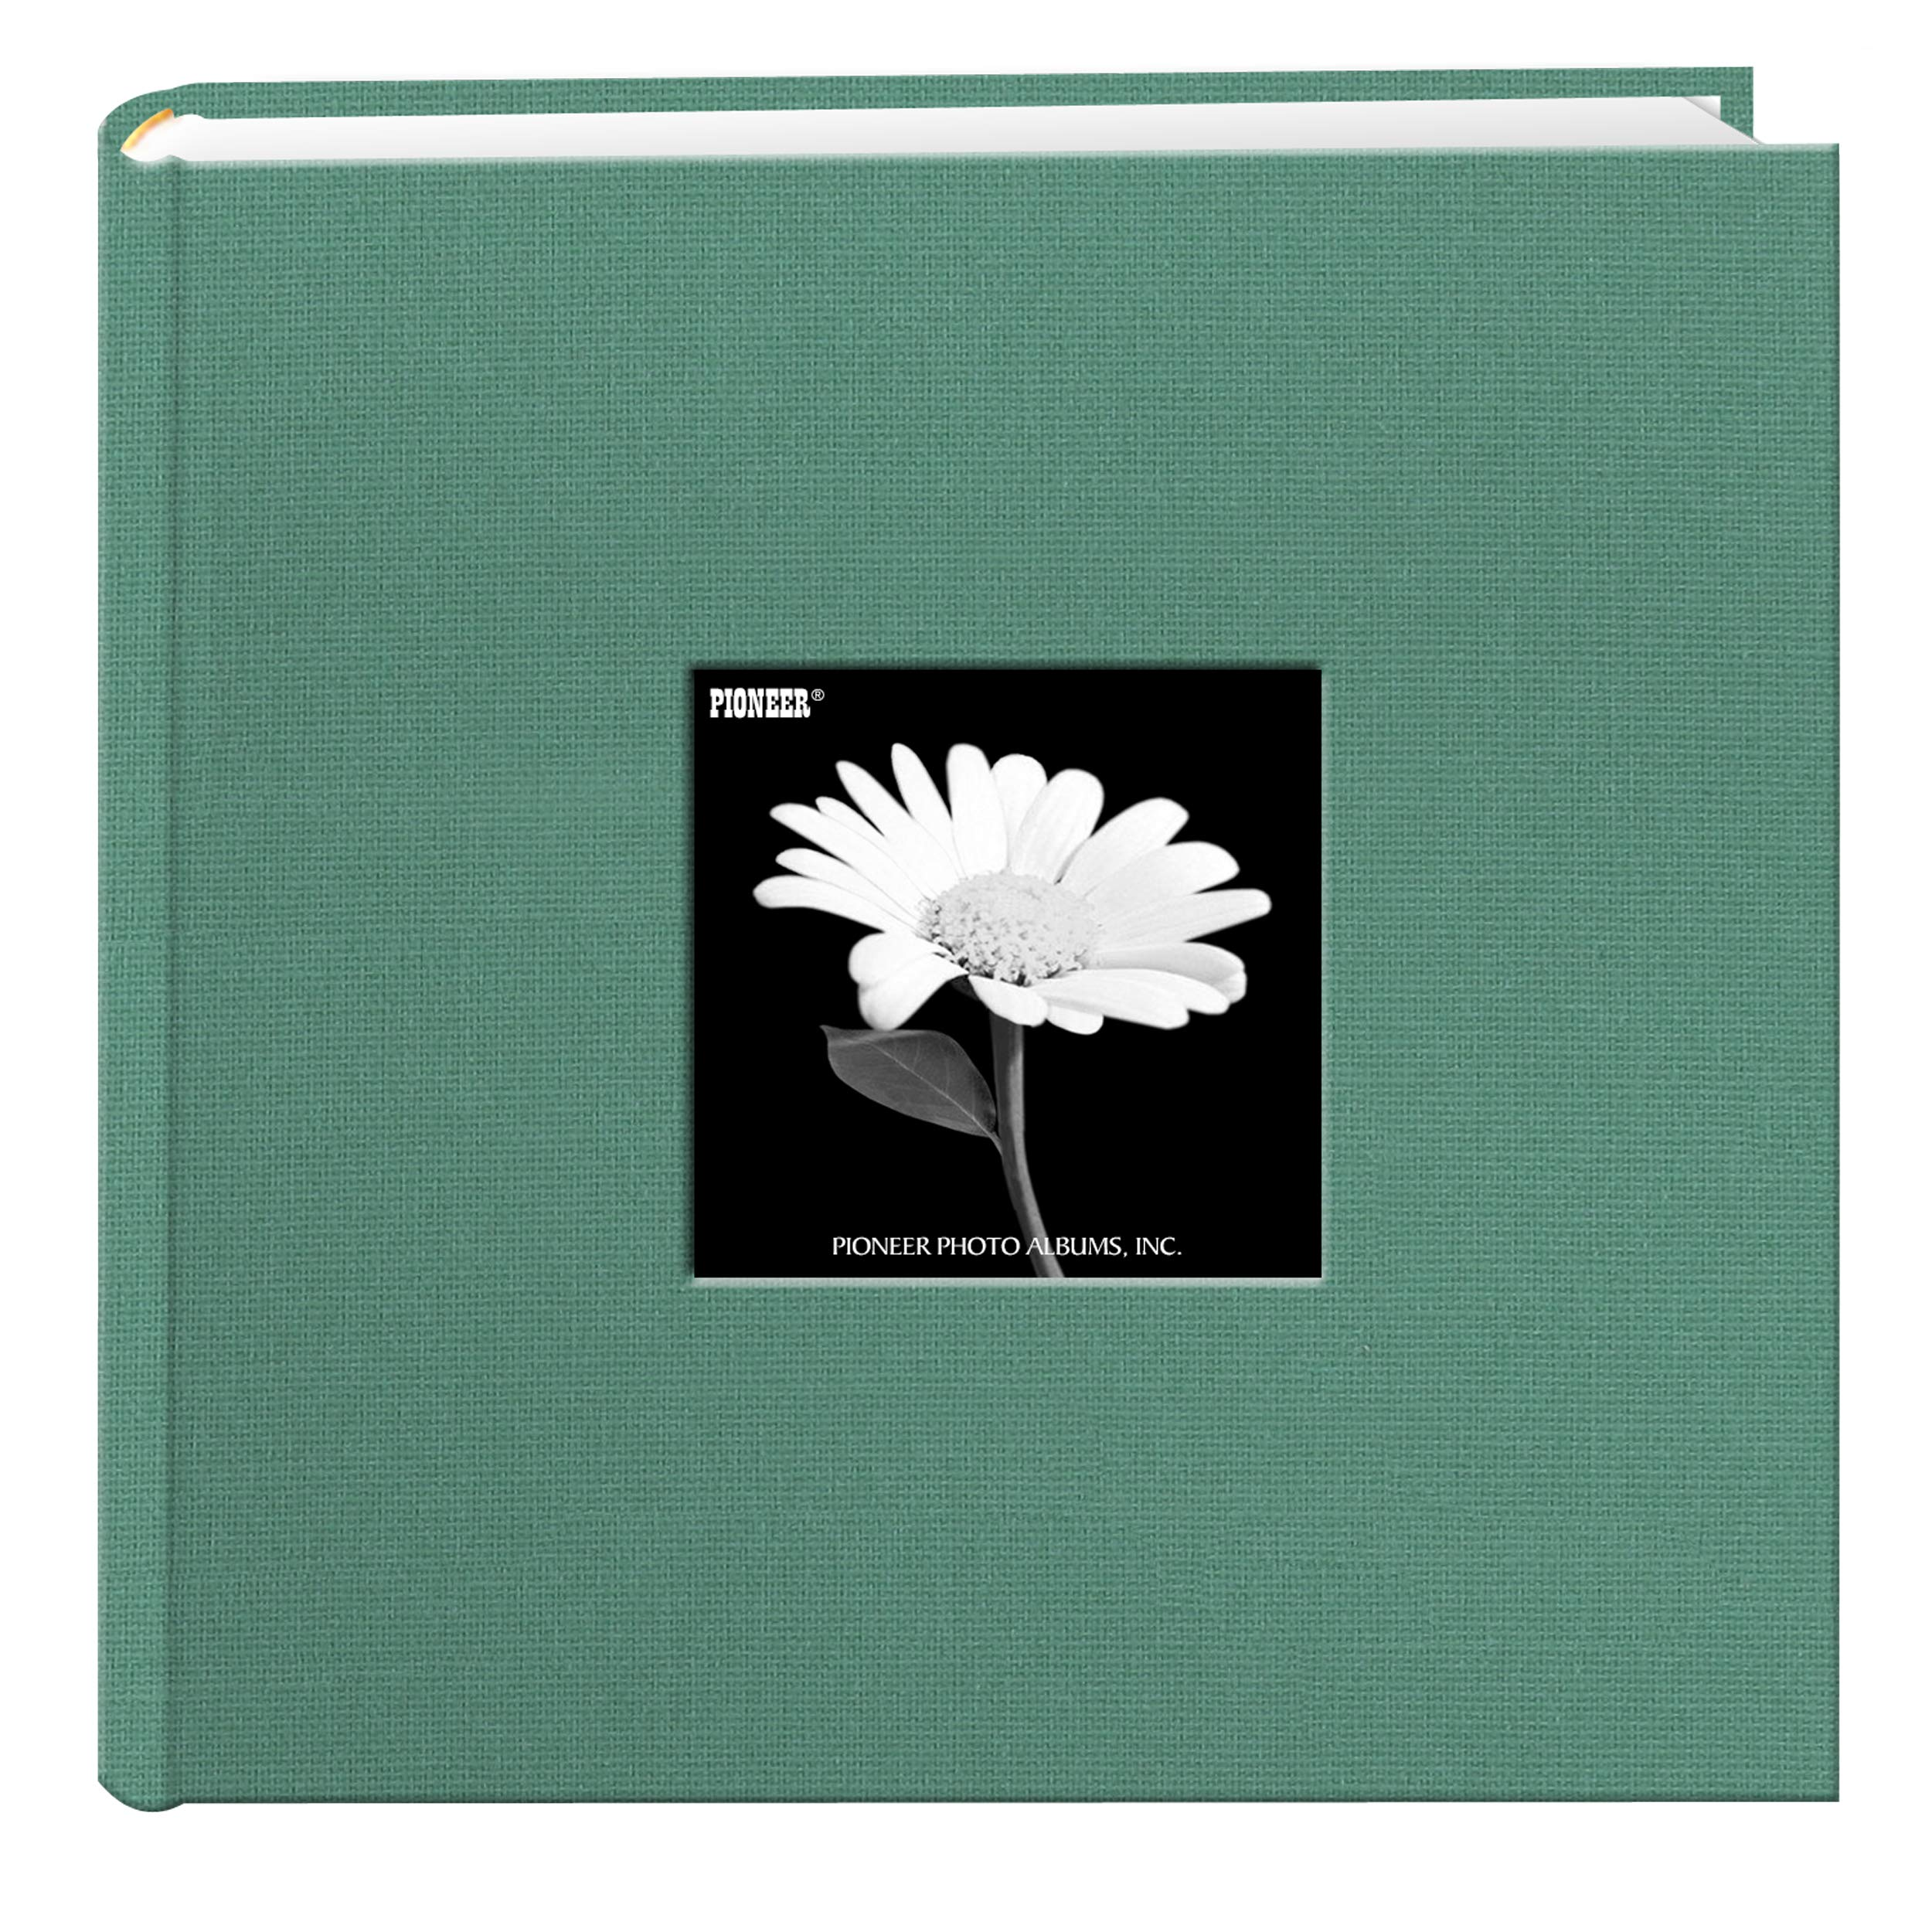 Fabric Frame Cover Photo Album 200 Pockets Hold 4x6 Photos, Tranquil Aqua by Pioneer Photo Albums